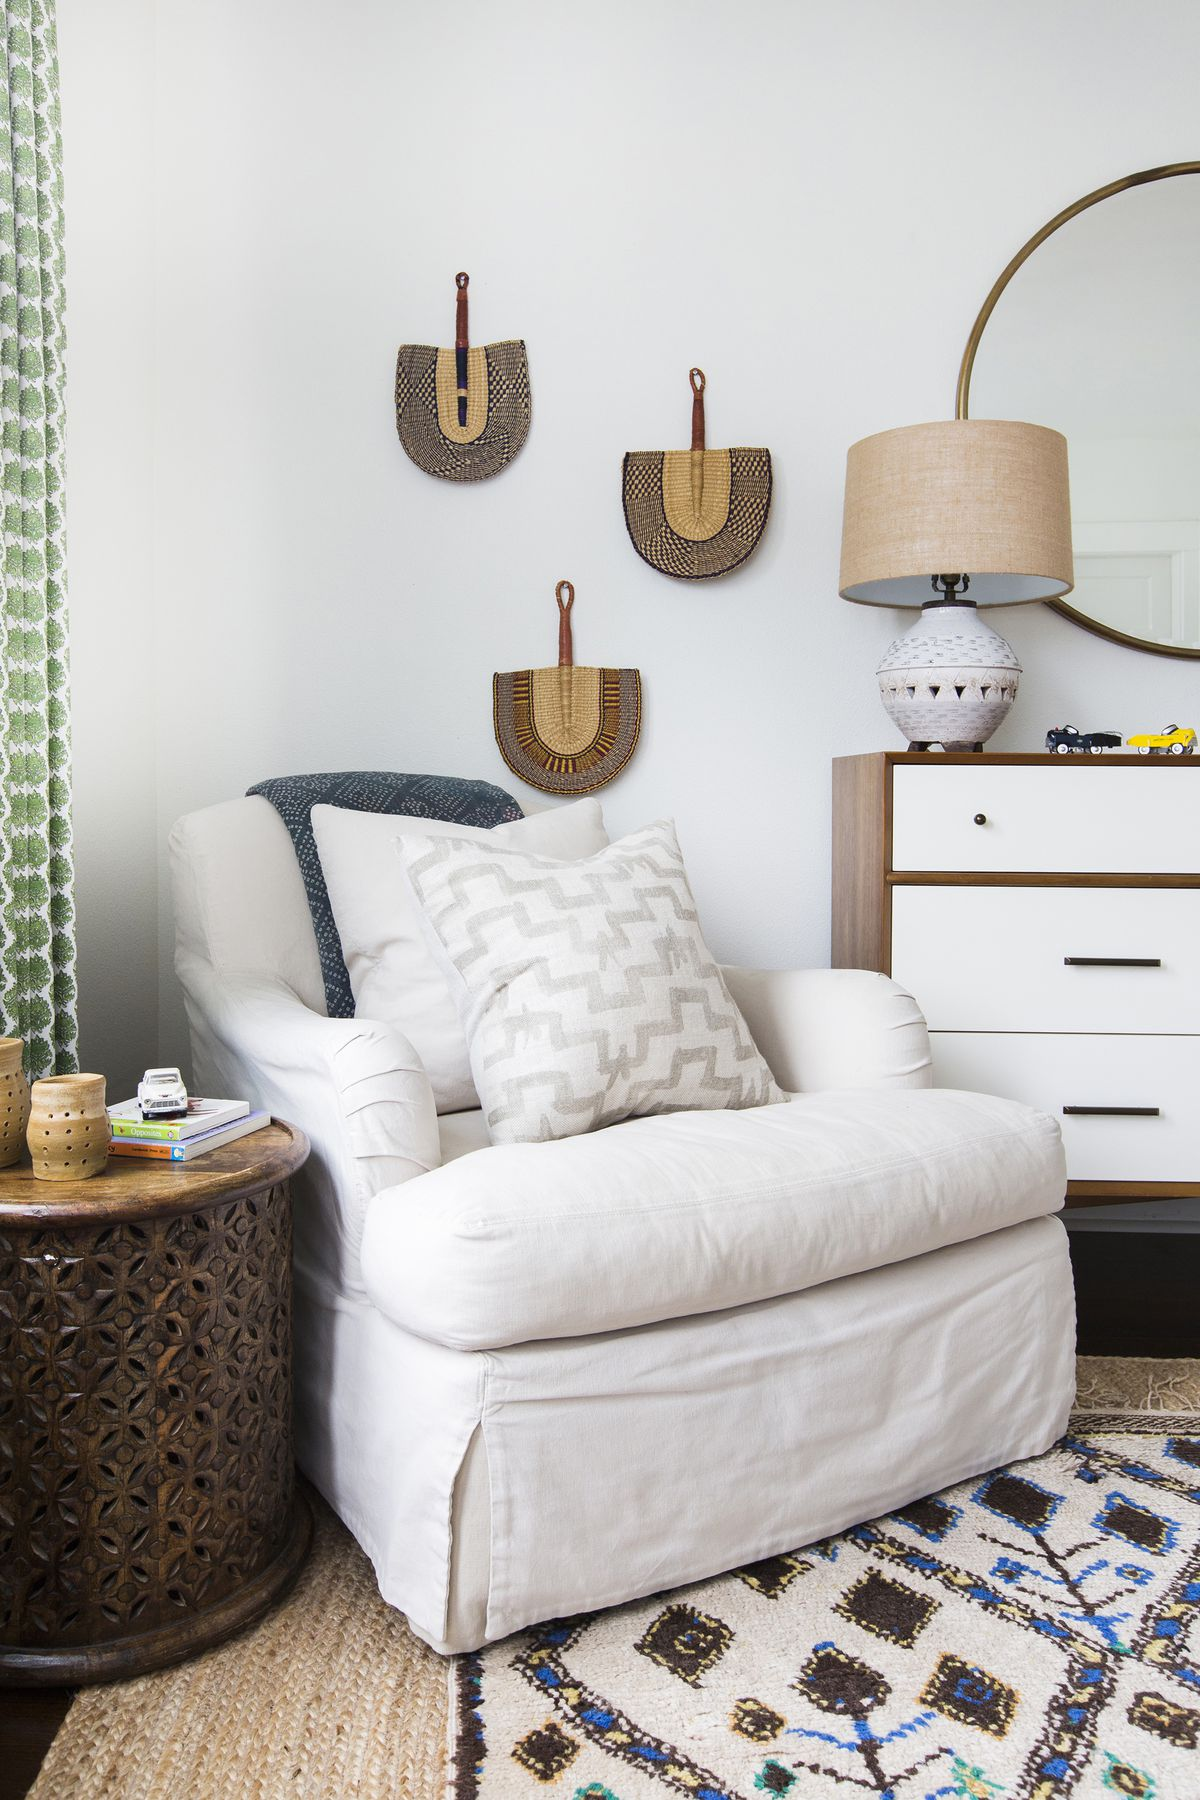 African fans hang on the wall, and a carved African wood table sits beside a white chair.